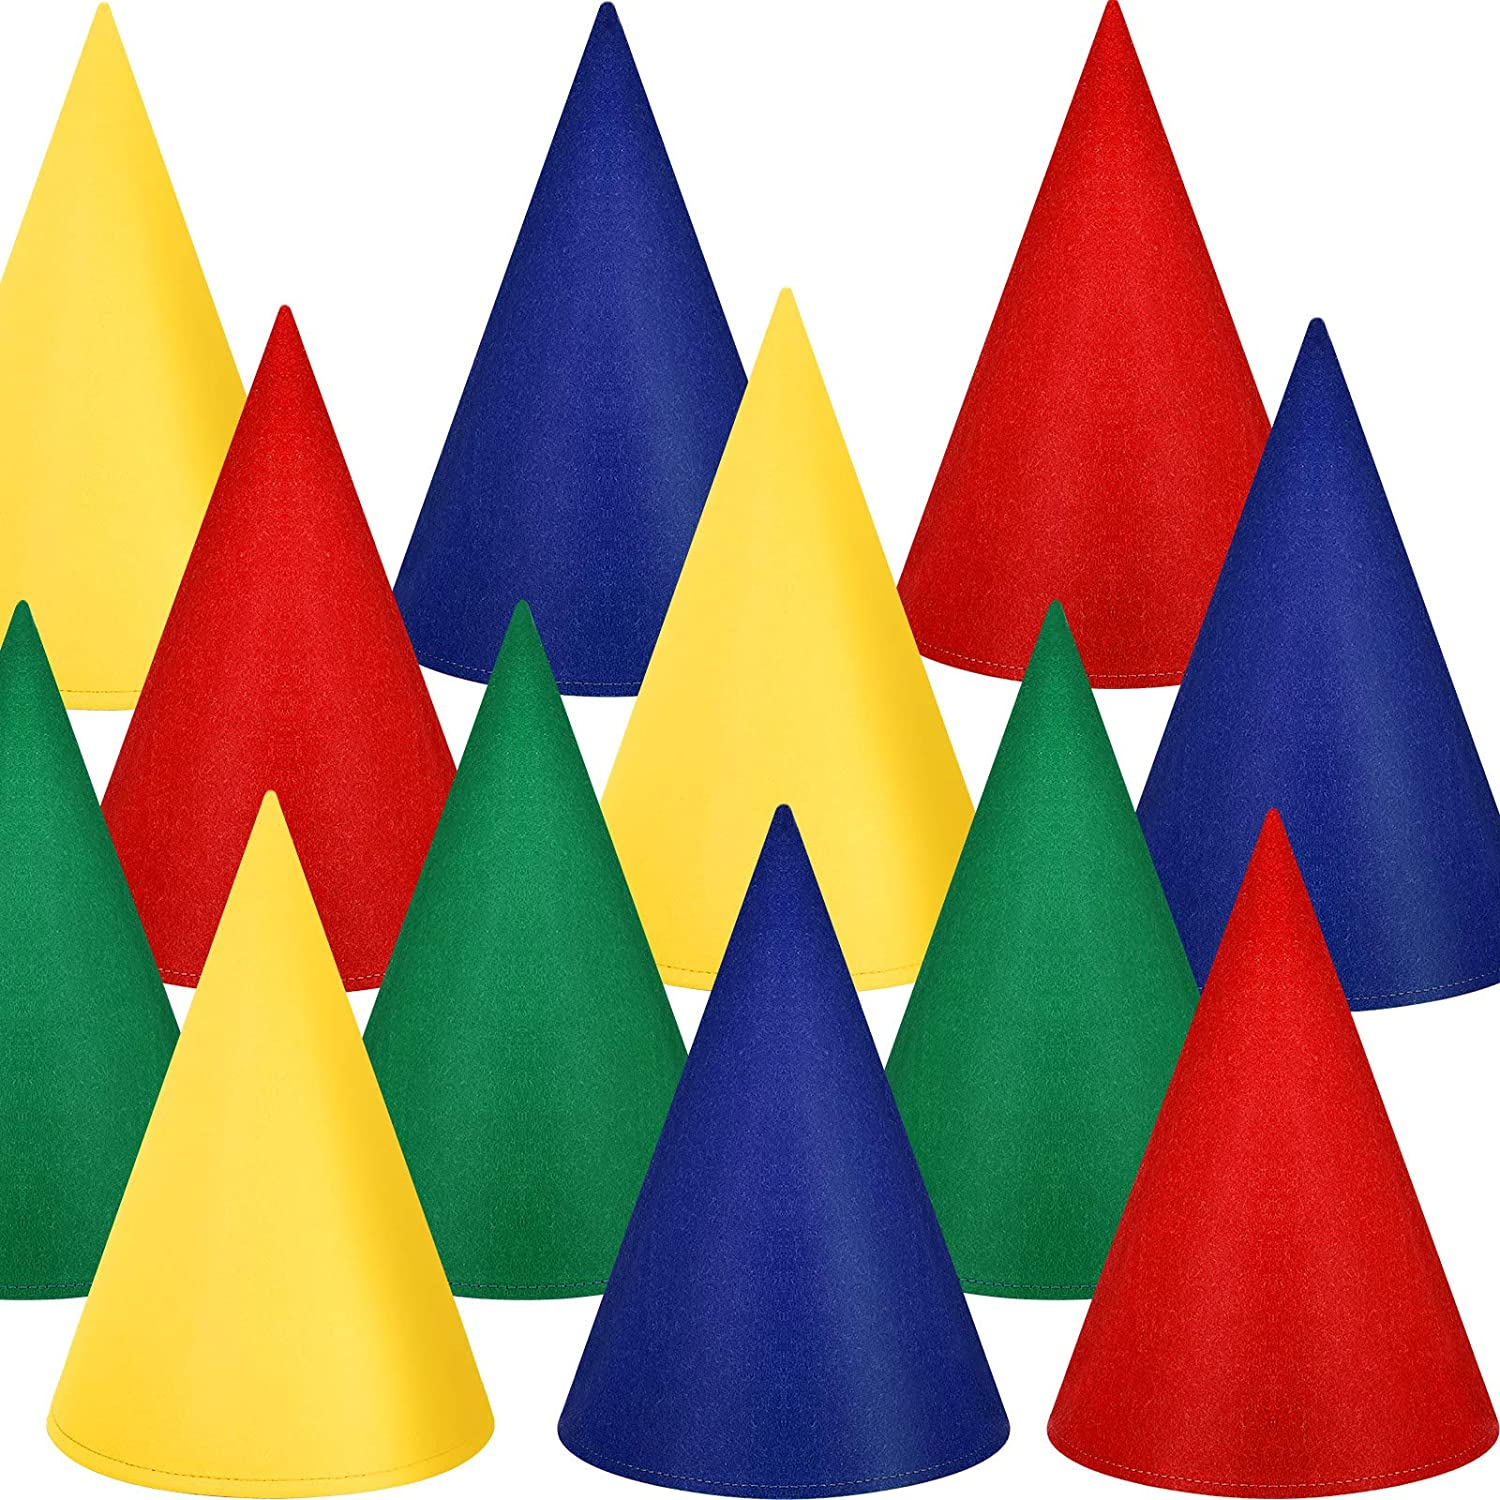 12 Pieces Felt Dwarf Hats Gnome Cone Party Hats Colorful Elf Hat for Costume Accessory Party Favors